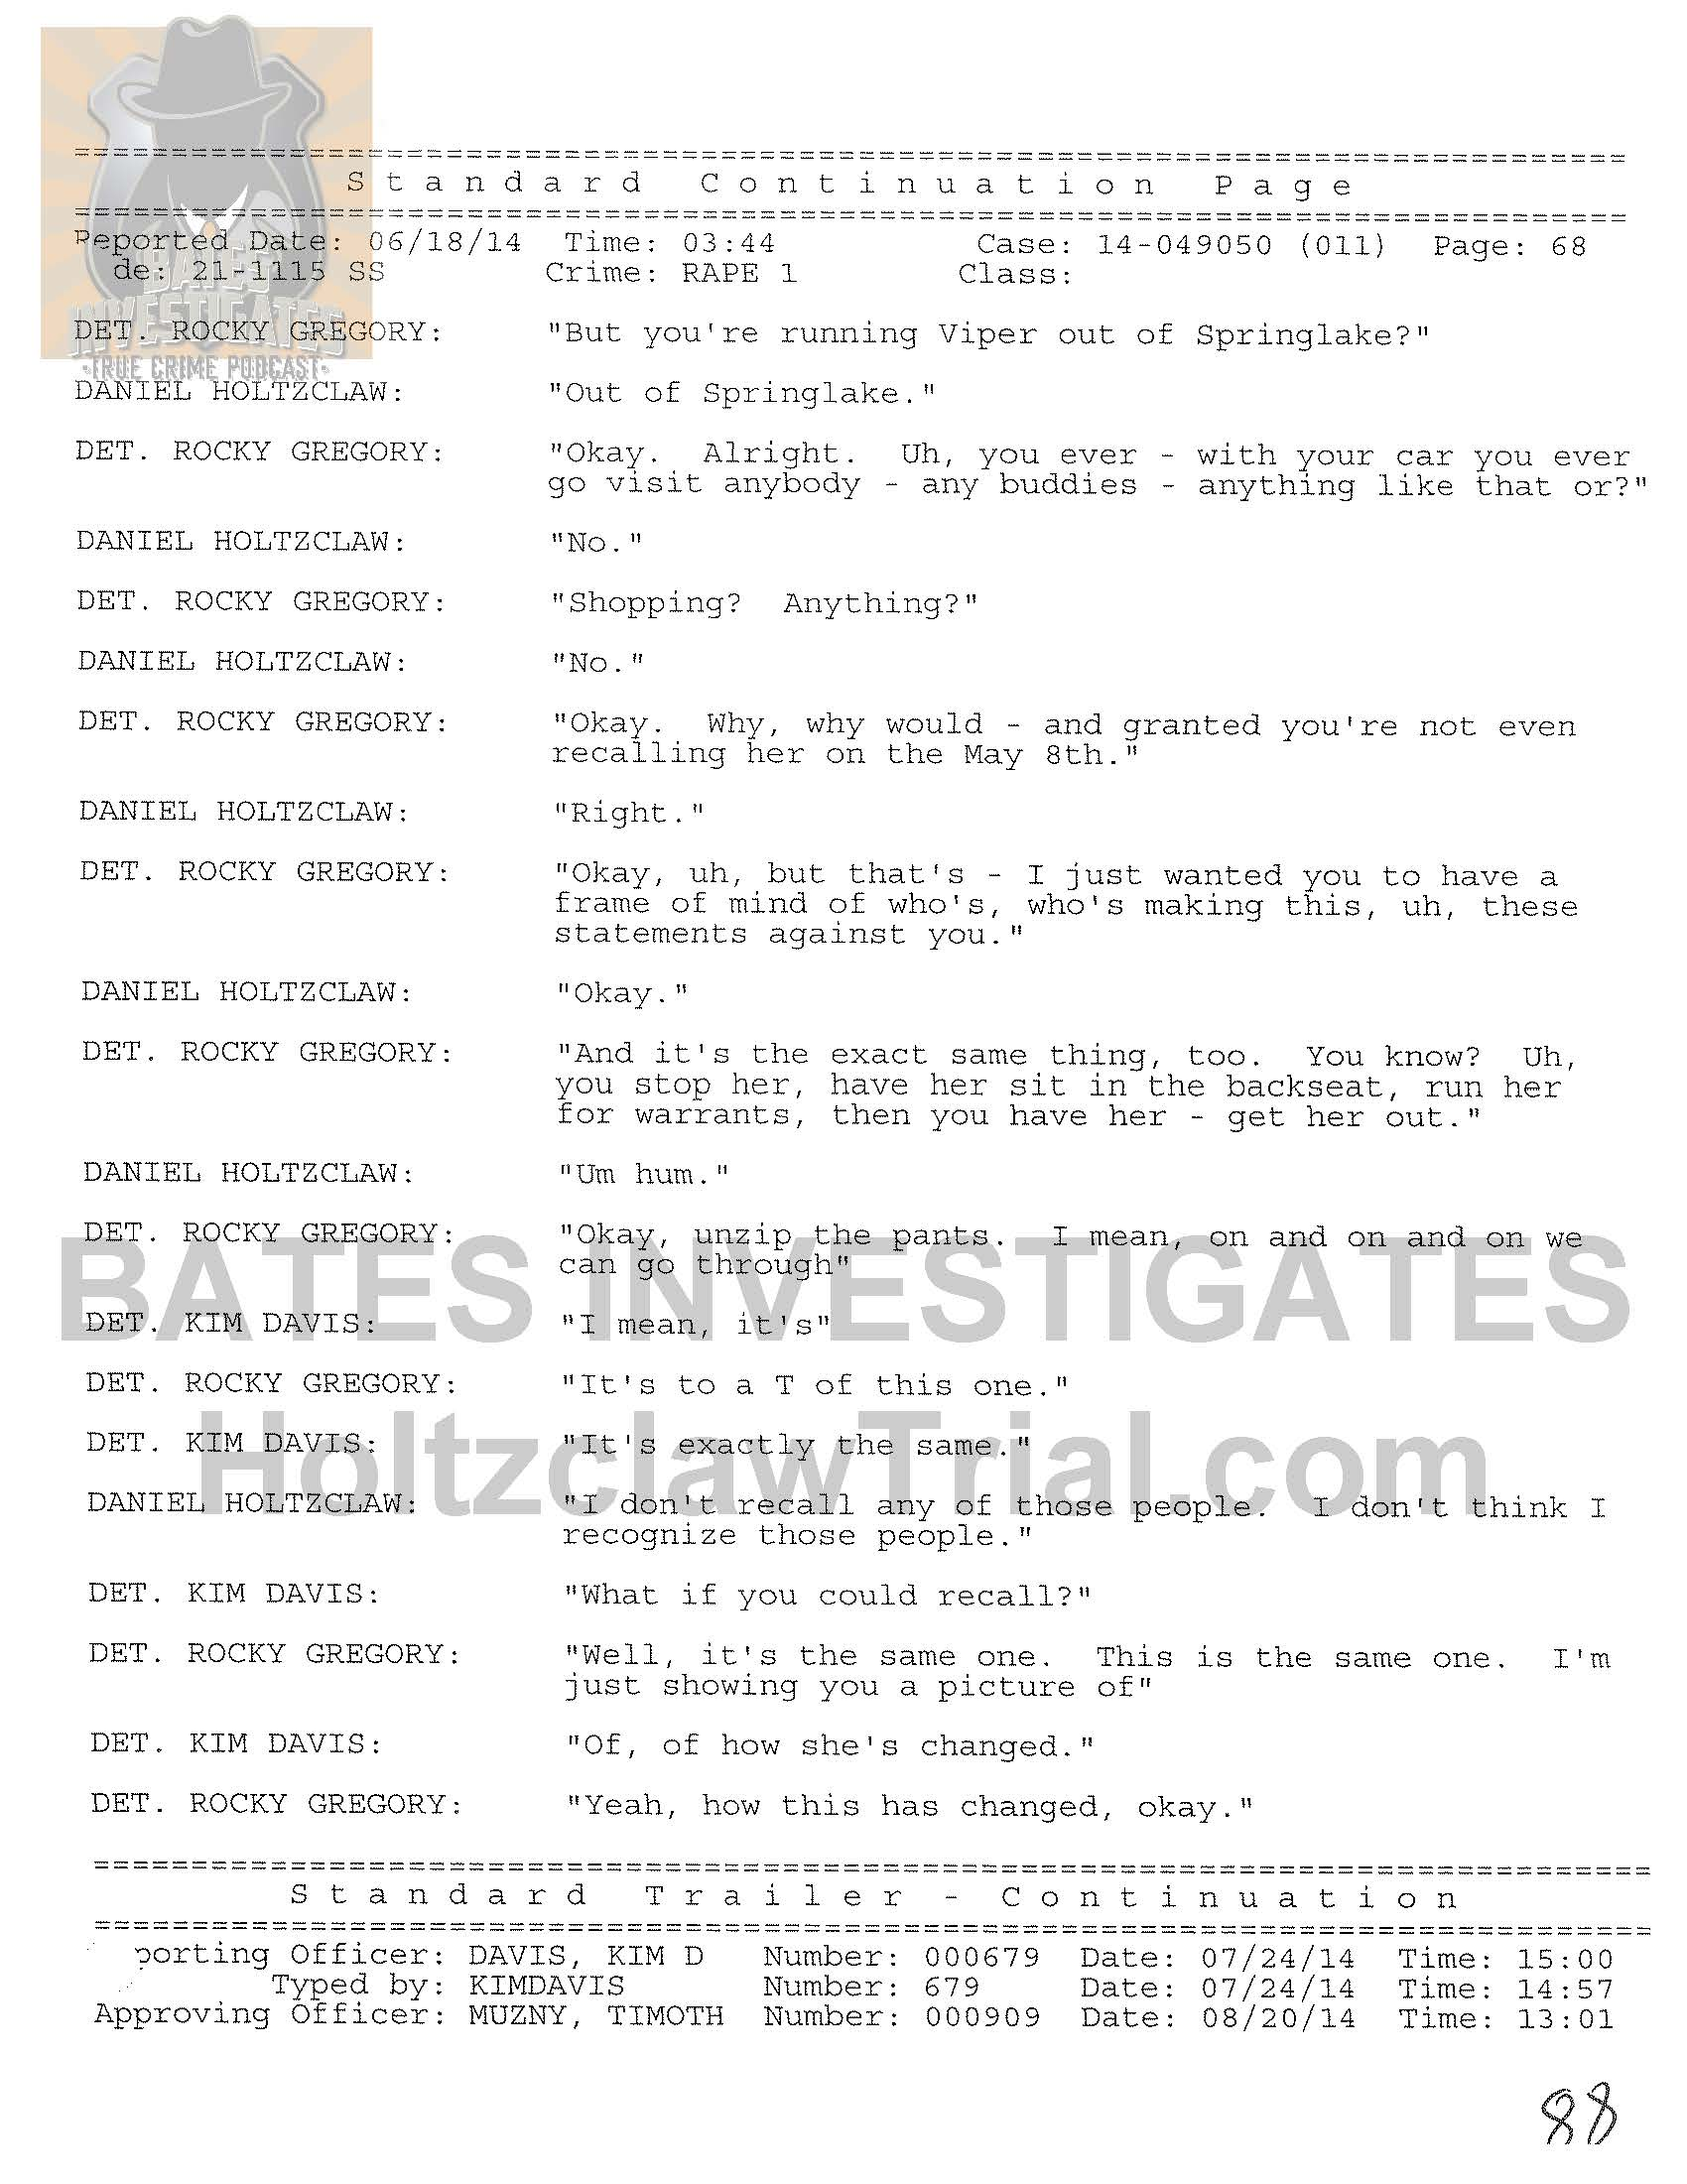 Holtzclaw Interrogation Transcript - Ep02 Redacted_Page_68.jpg